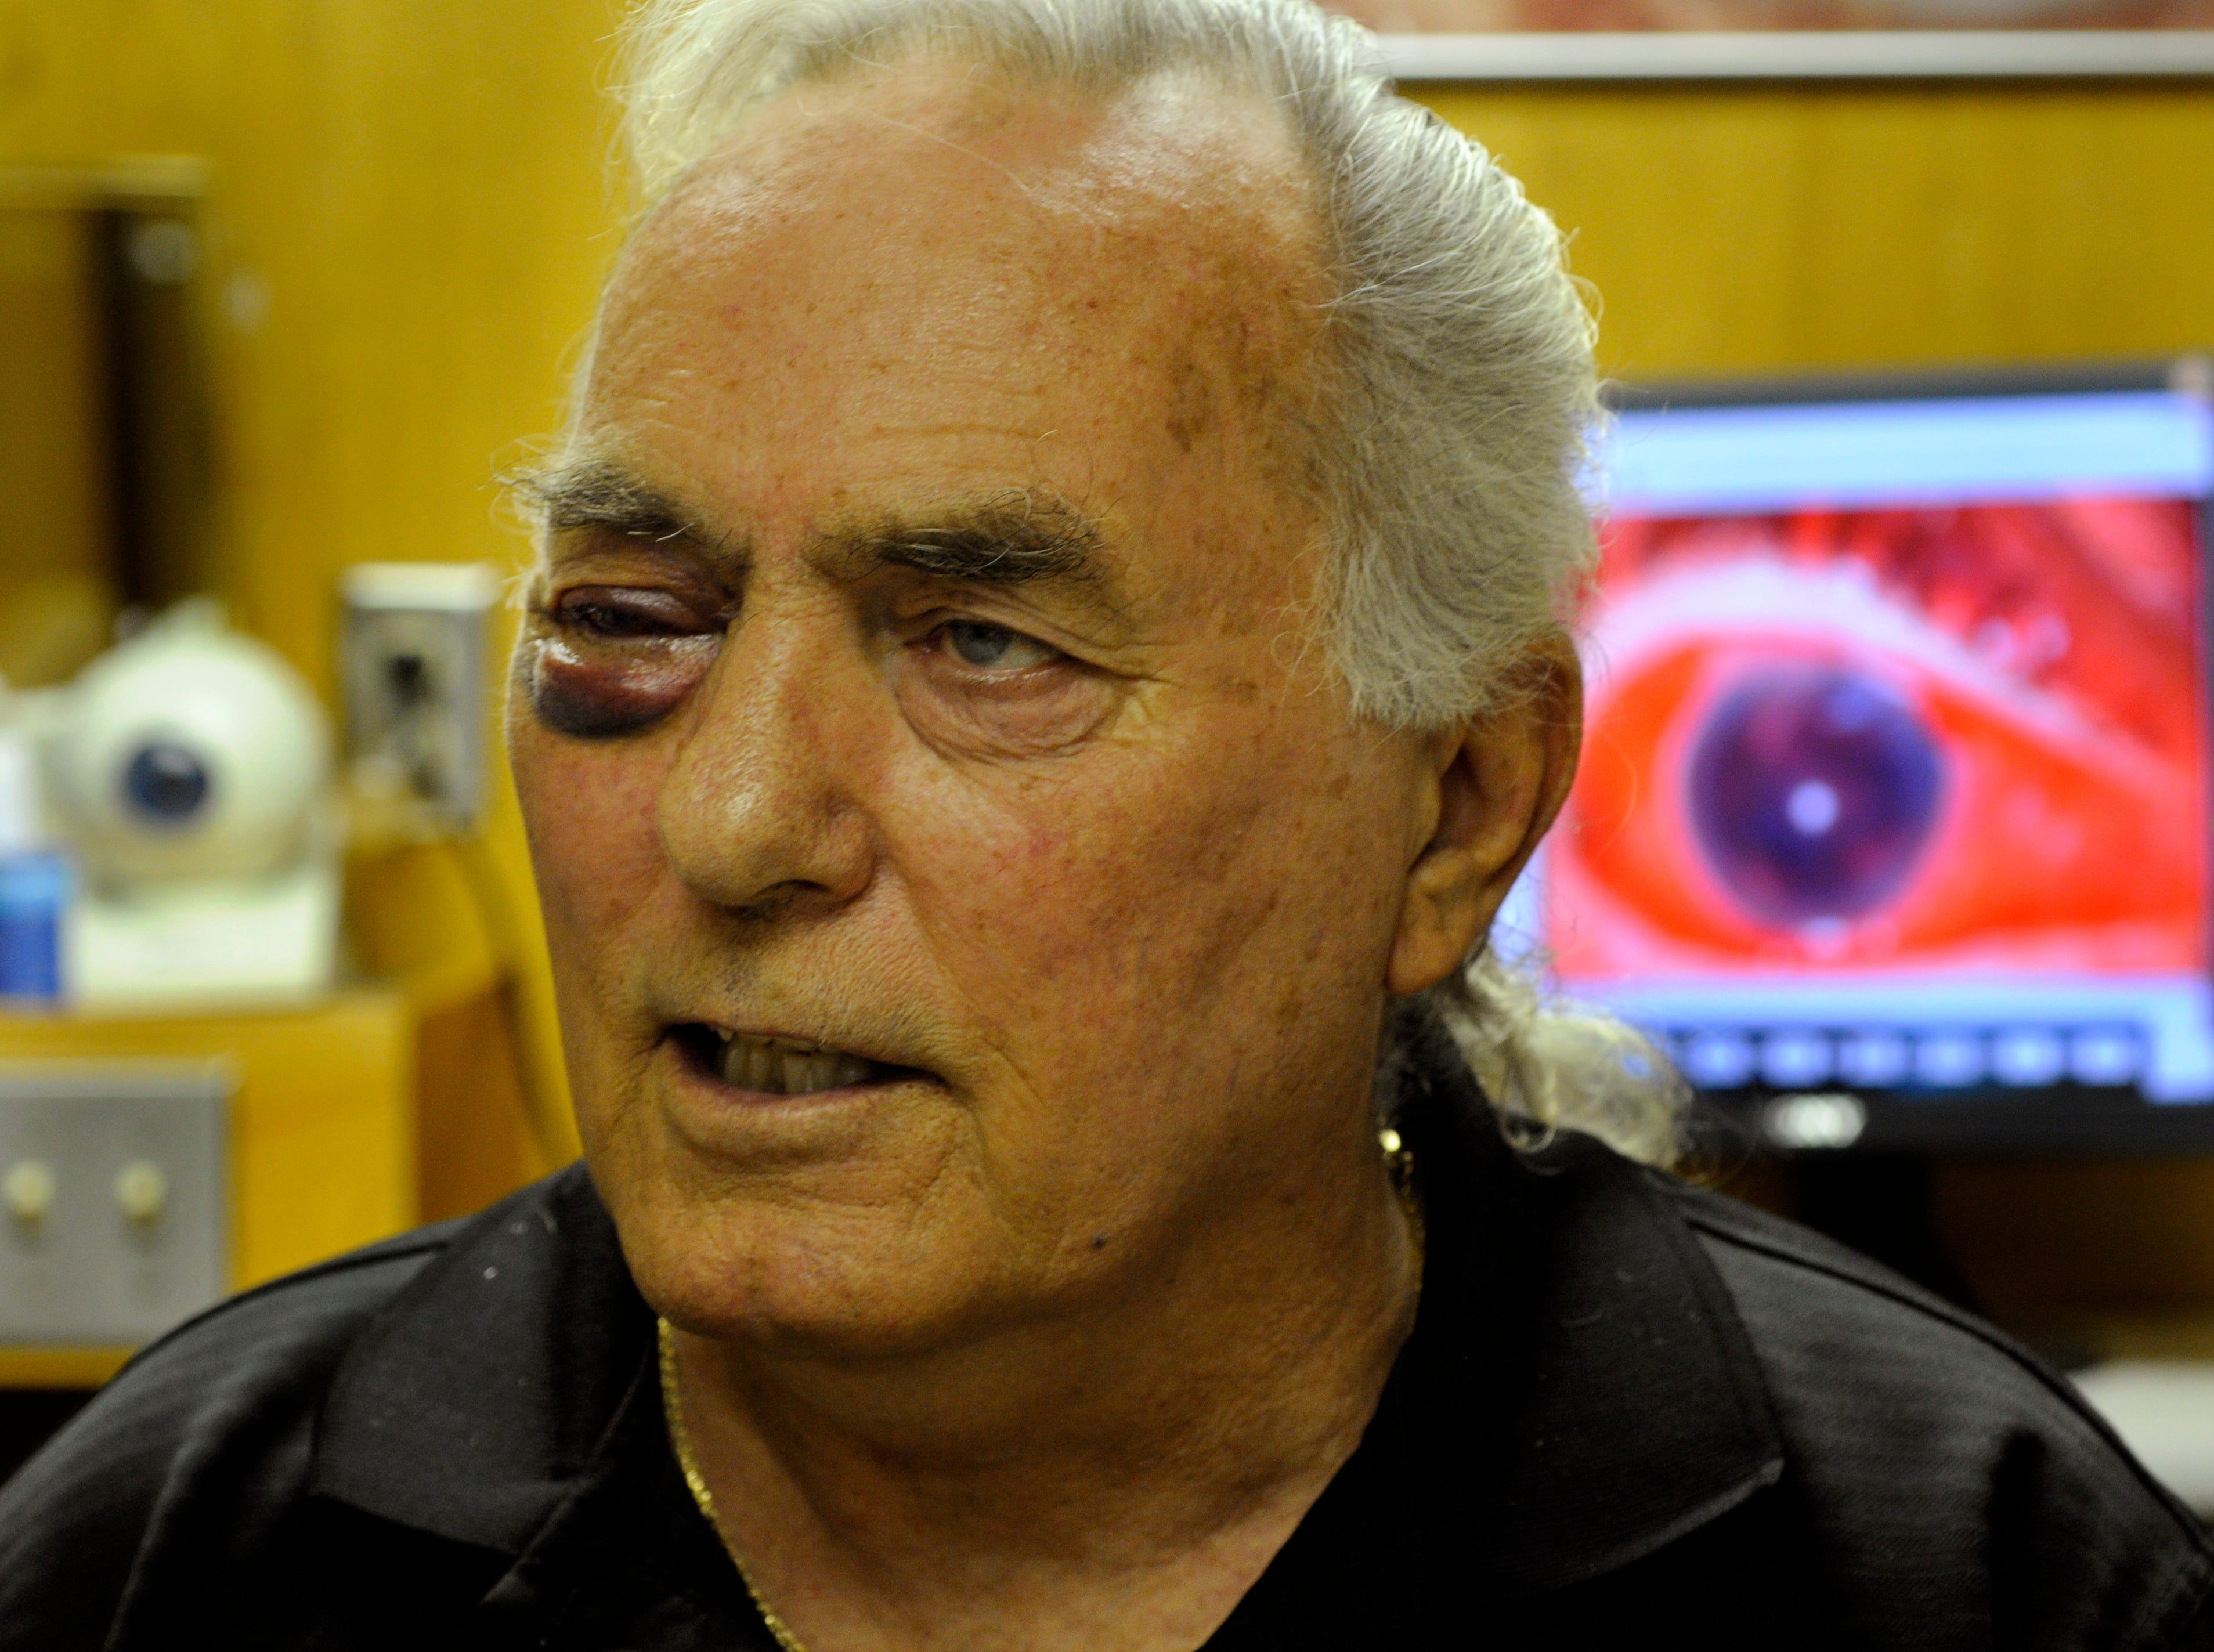 Church shooting victim John T. Worth has his wounded eye examined Wednesday at UT Professional Building. Worth, one of the victims at Tennessee Valley Unitarian Universalist Church, had a shotgun pellet strike his right eye. Dr. David Harris, Jr., told Worth that it was very unlikely he would regain use of the eye.